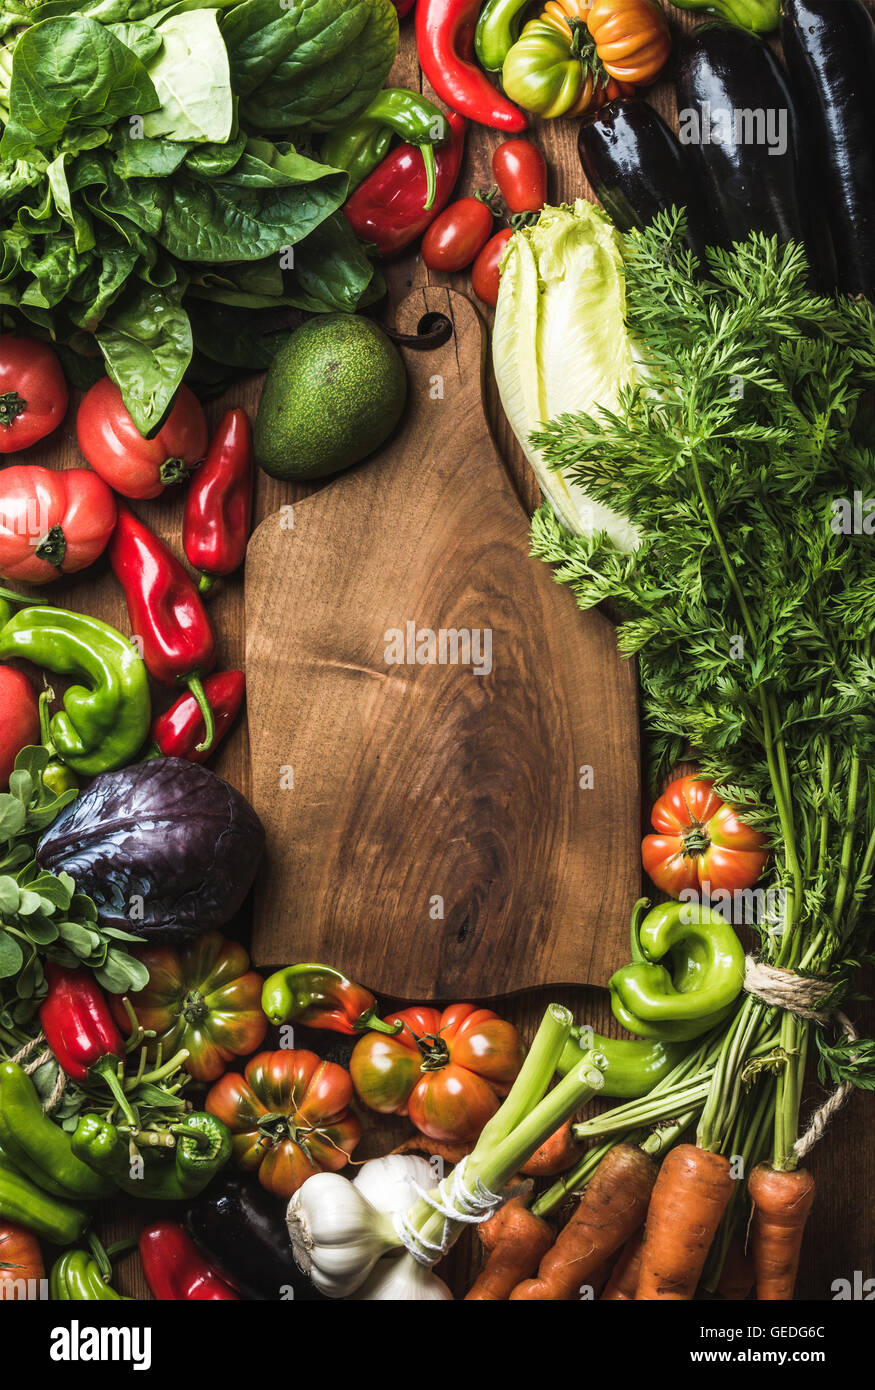 Fresh raw vegetable ingredients for healthy cooking or salad making with rustic wood board in center, top view, - Stock Image